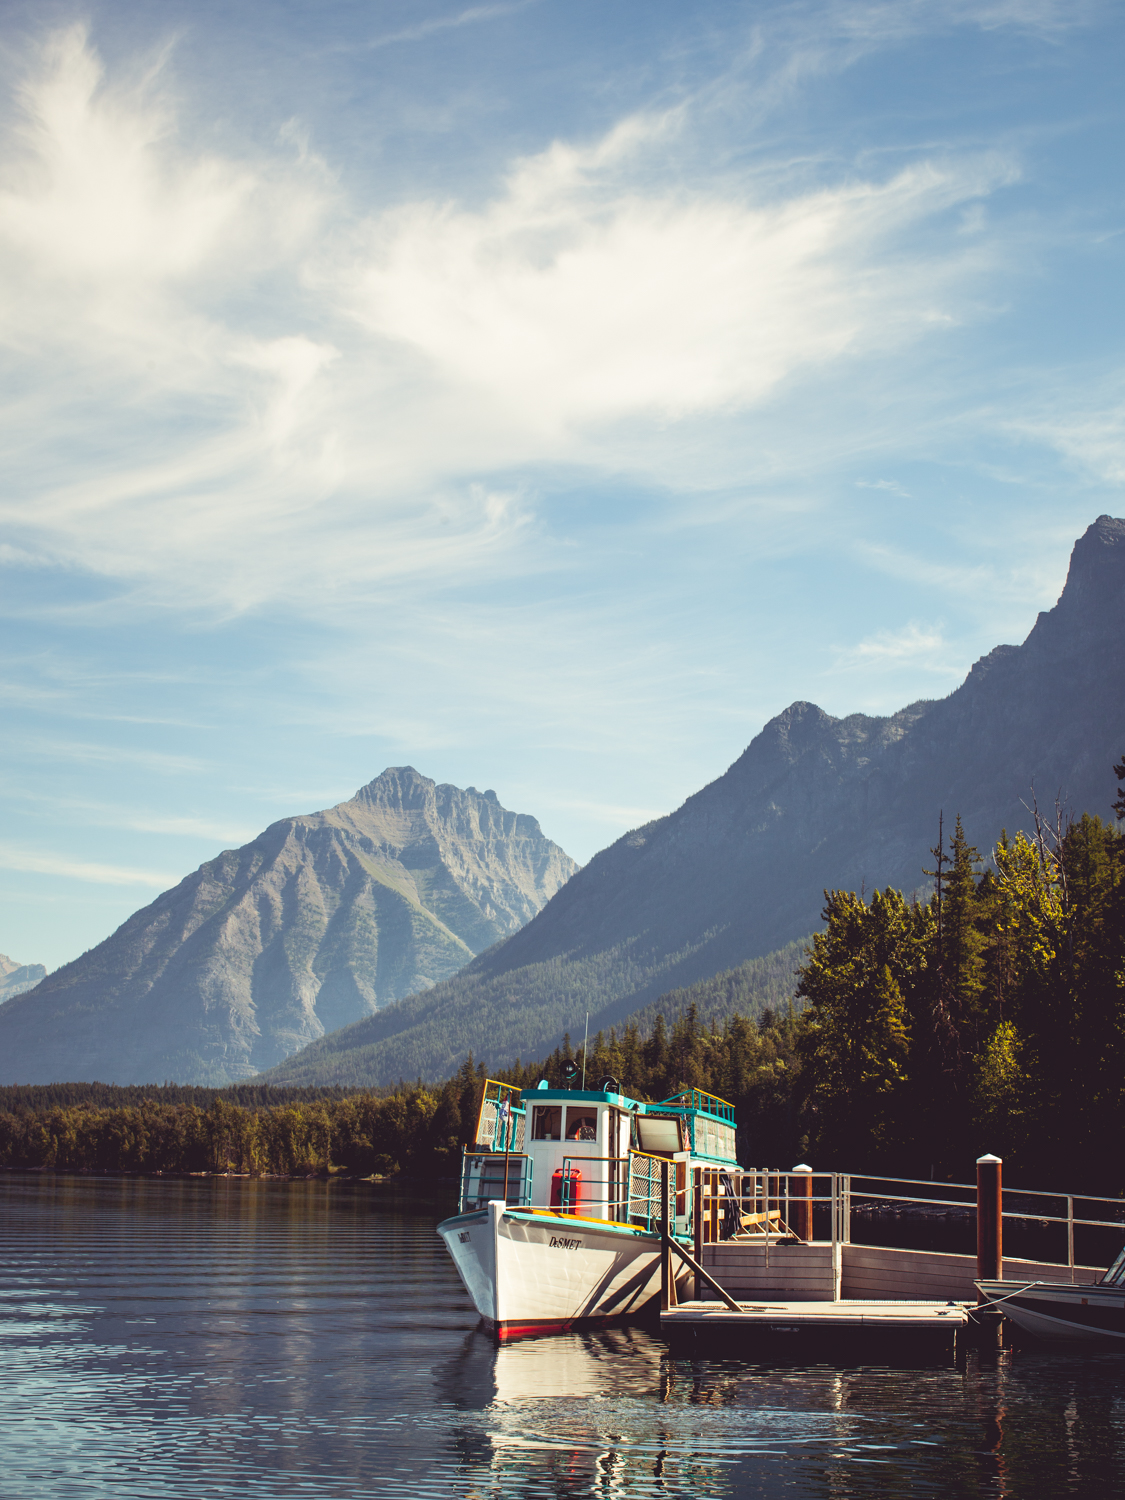 Tour Boat - Outdoors